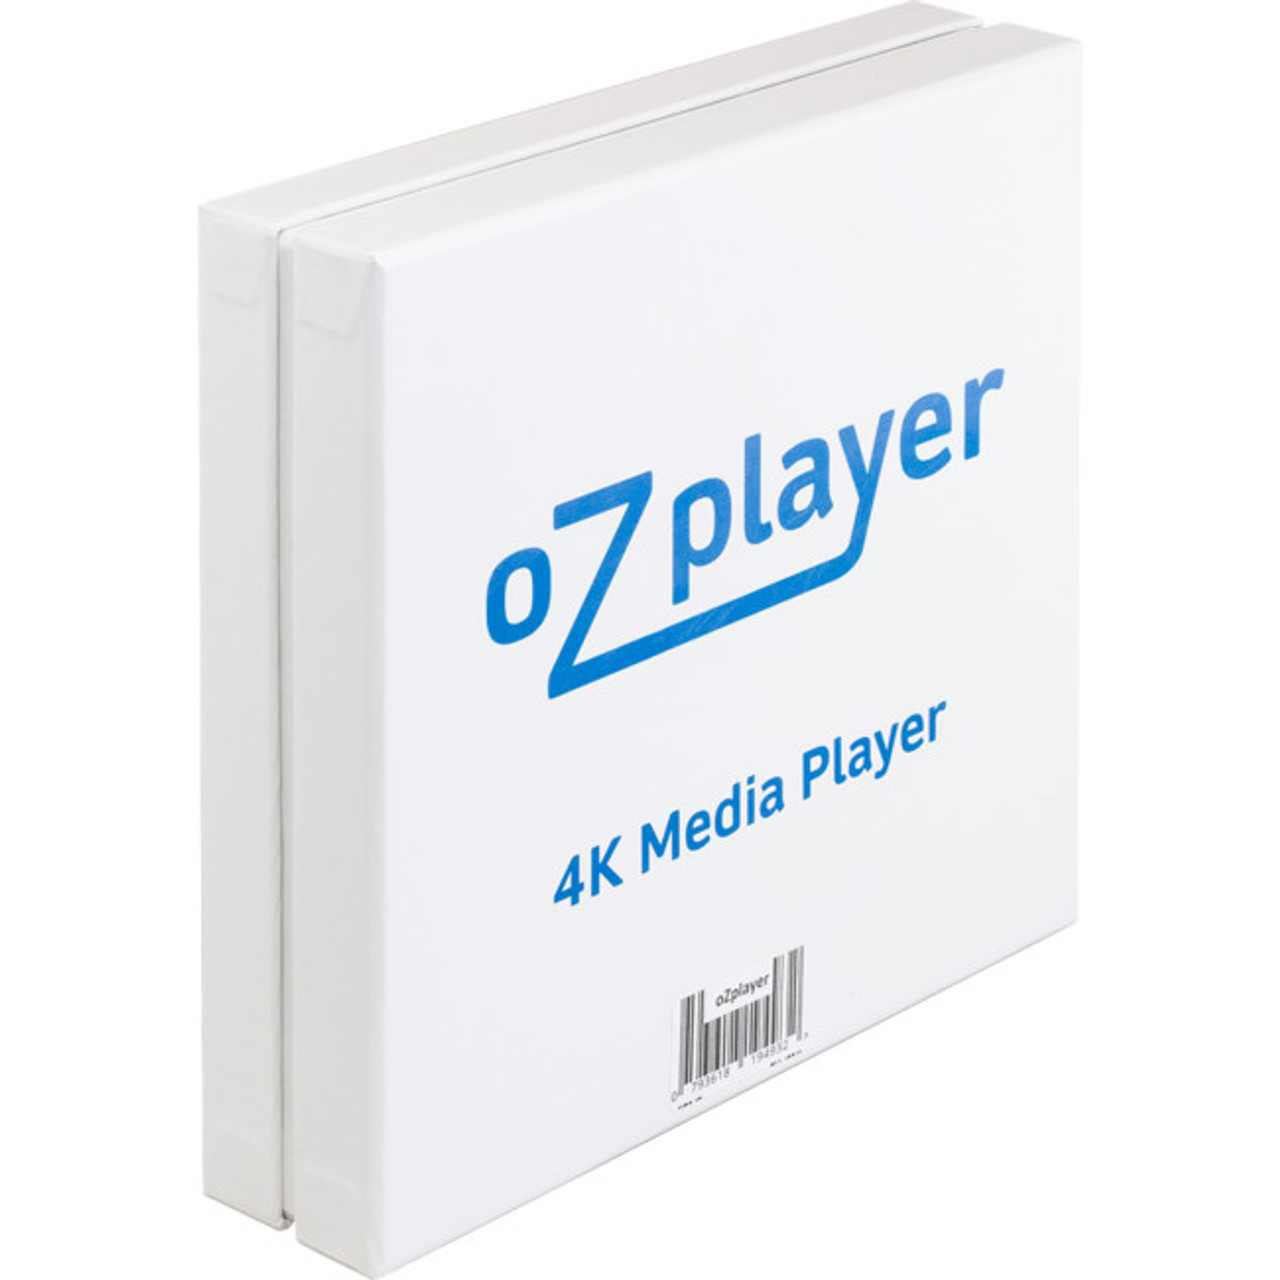 OzPlayer OZPLAYER Quadcore 4K 7.1 Android Media Player